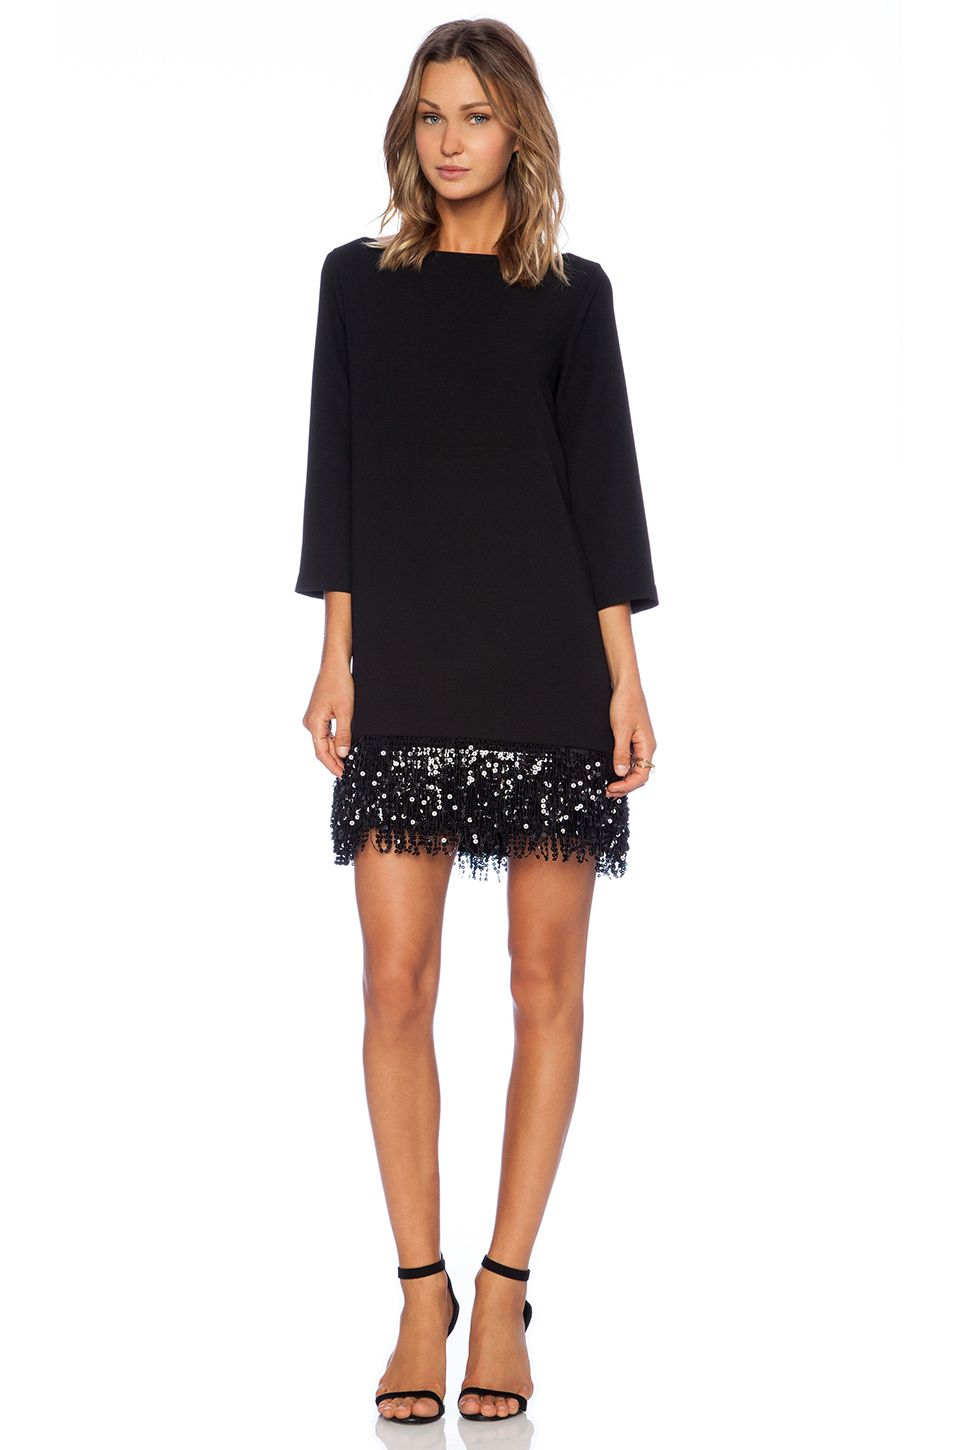 kate spade new york Sequin Fringe Mini Dress en Negro | REVOLVE